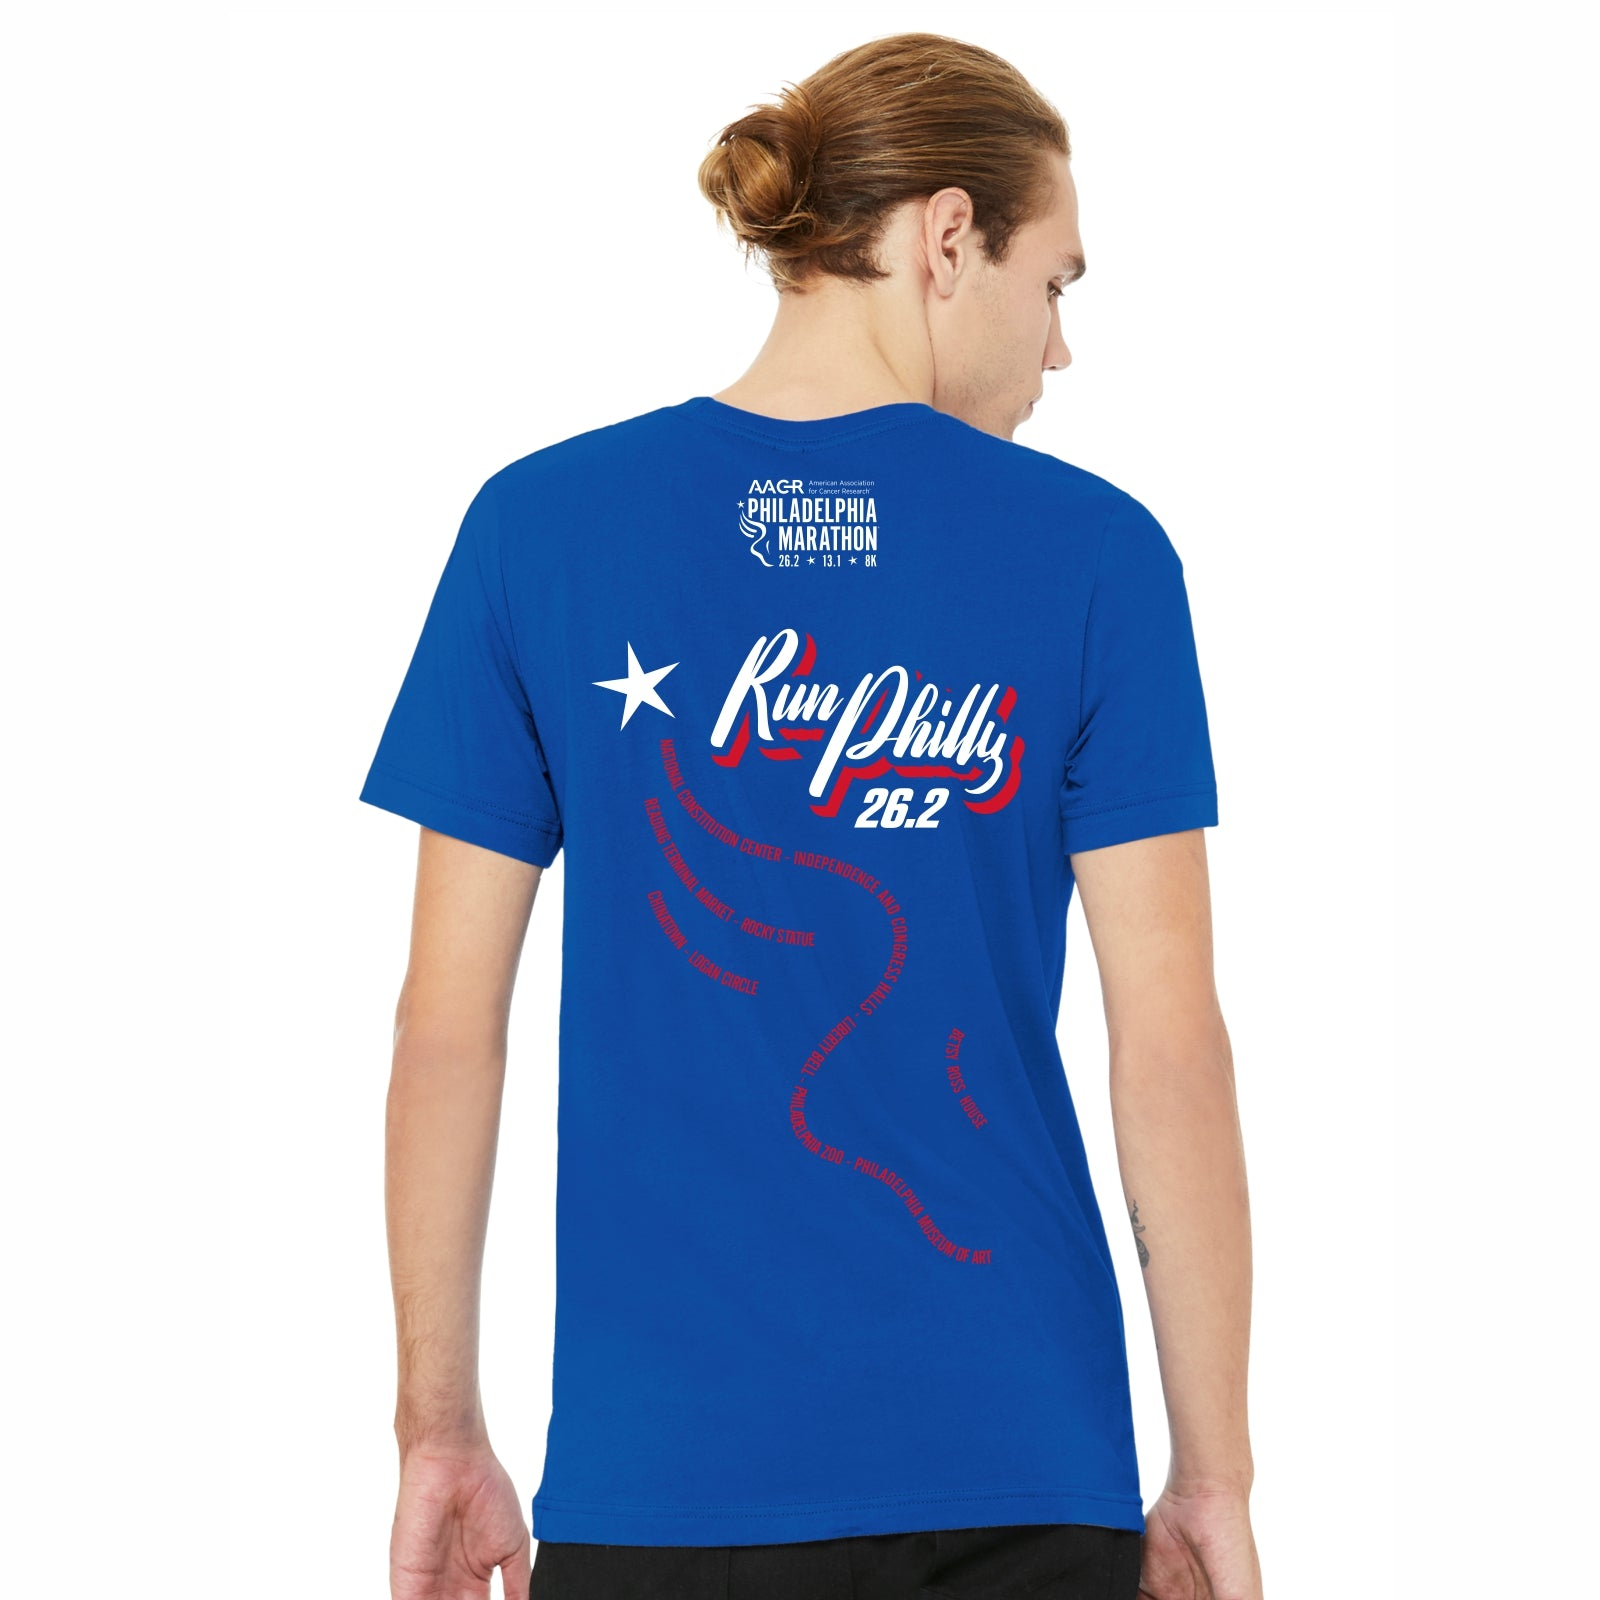 Men's SS Ringspun Tee -True Royal 'AACR 2019 Course Design' - AACR Philadelphia Marathon